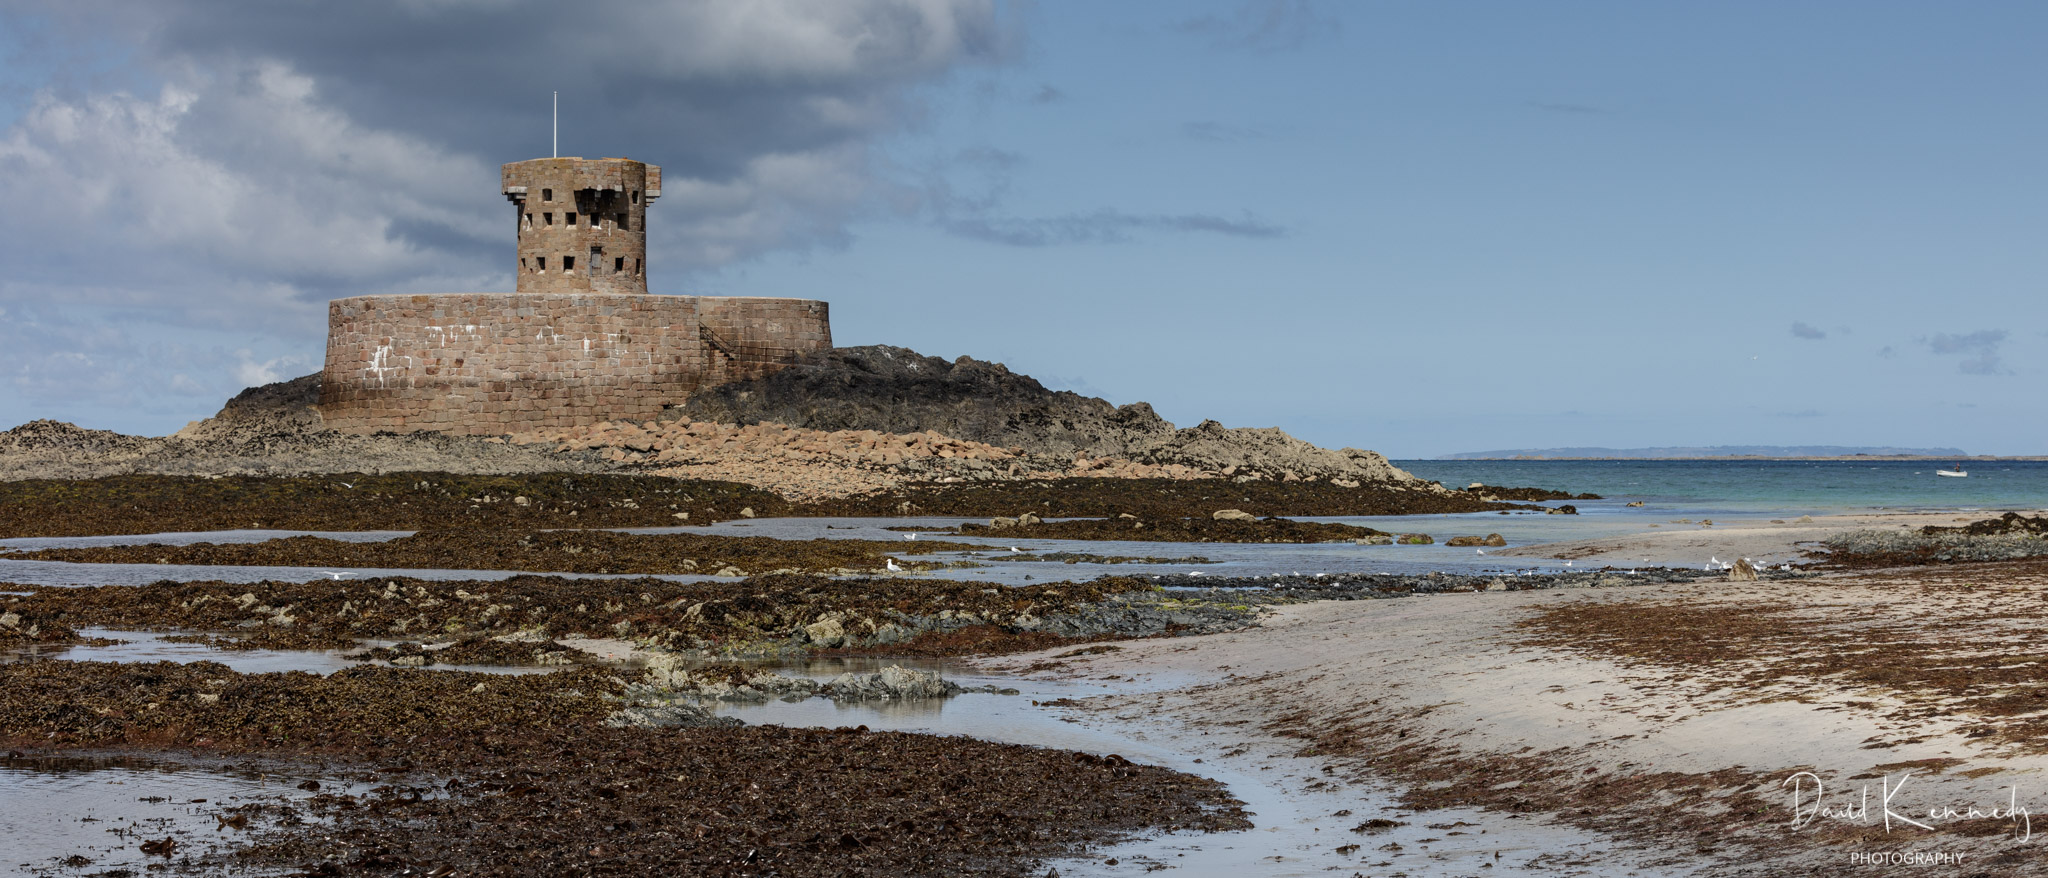 Napoleonic era defence tower at low tide